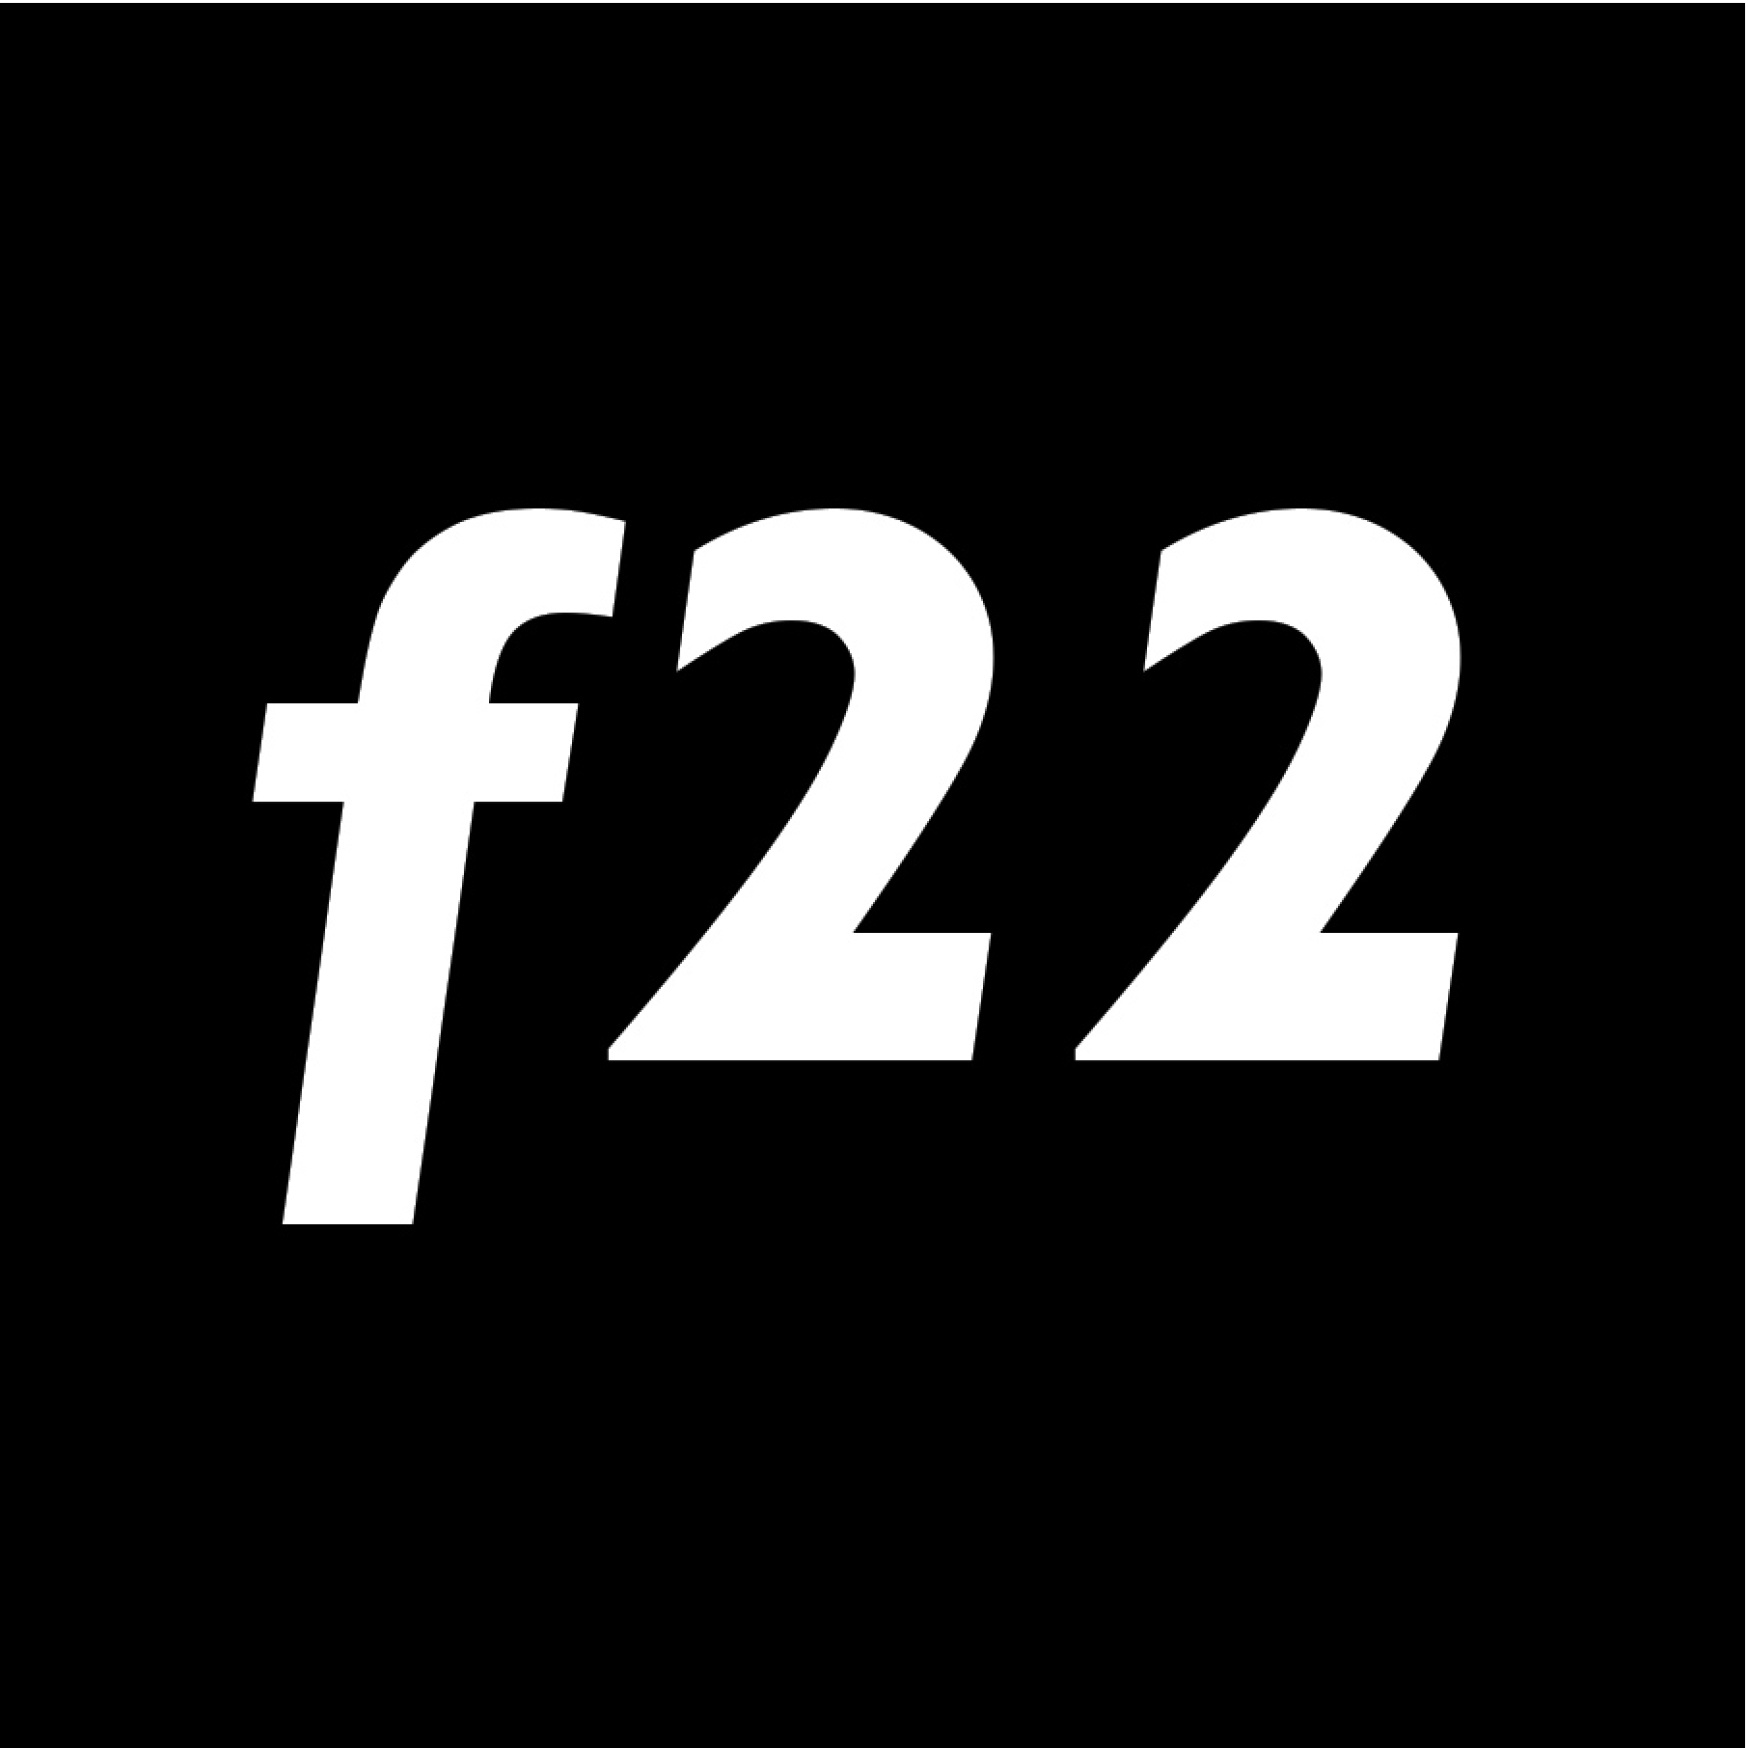 7 January 2021 - f22 Live 09 with Alys Tomlinson